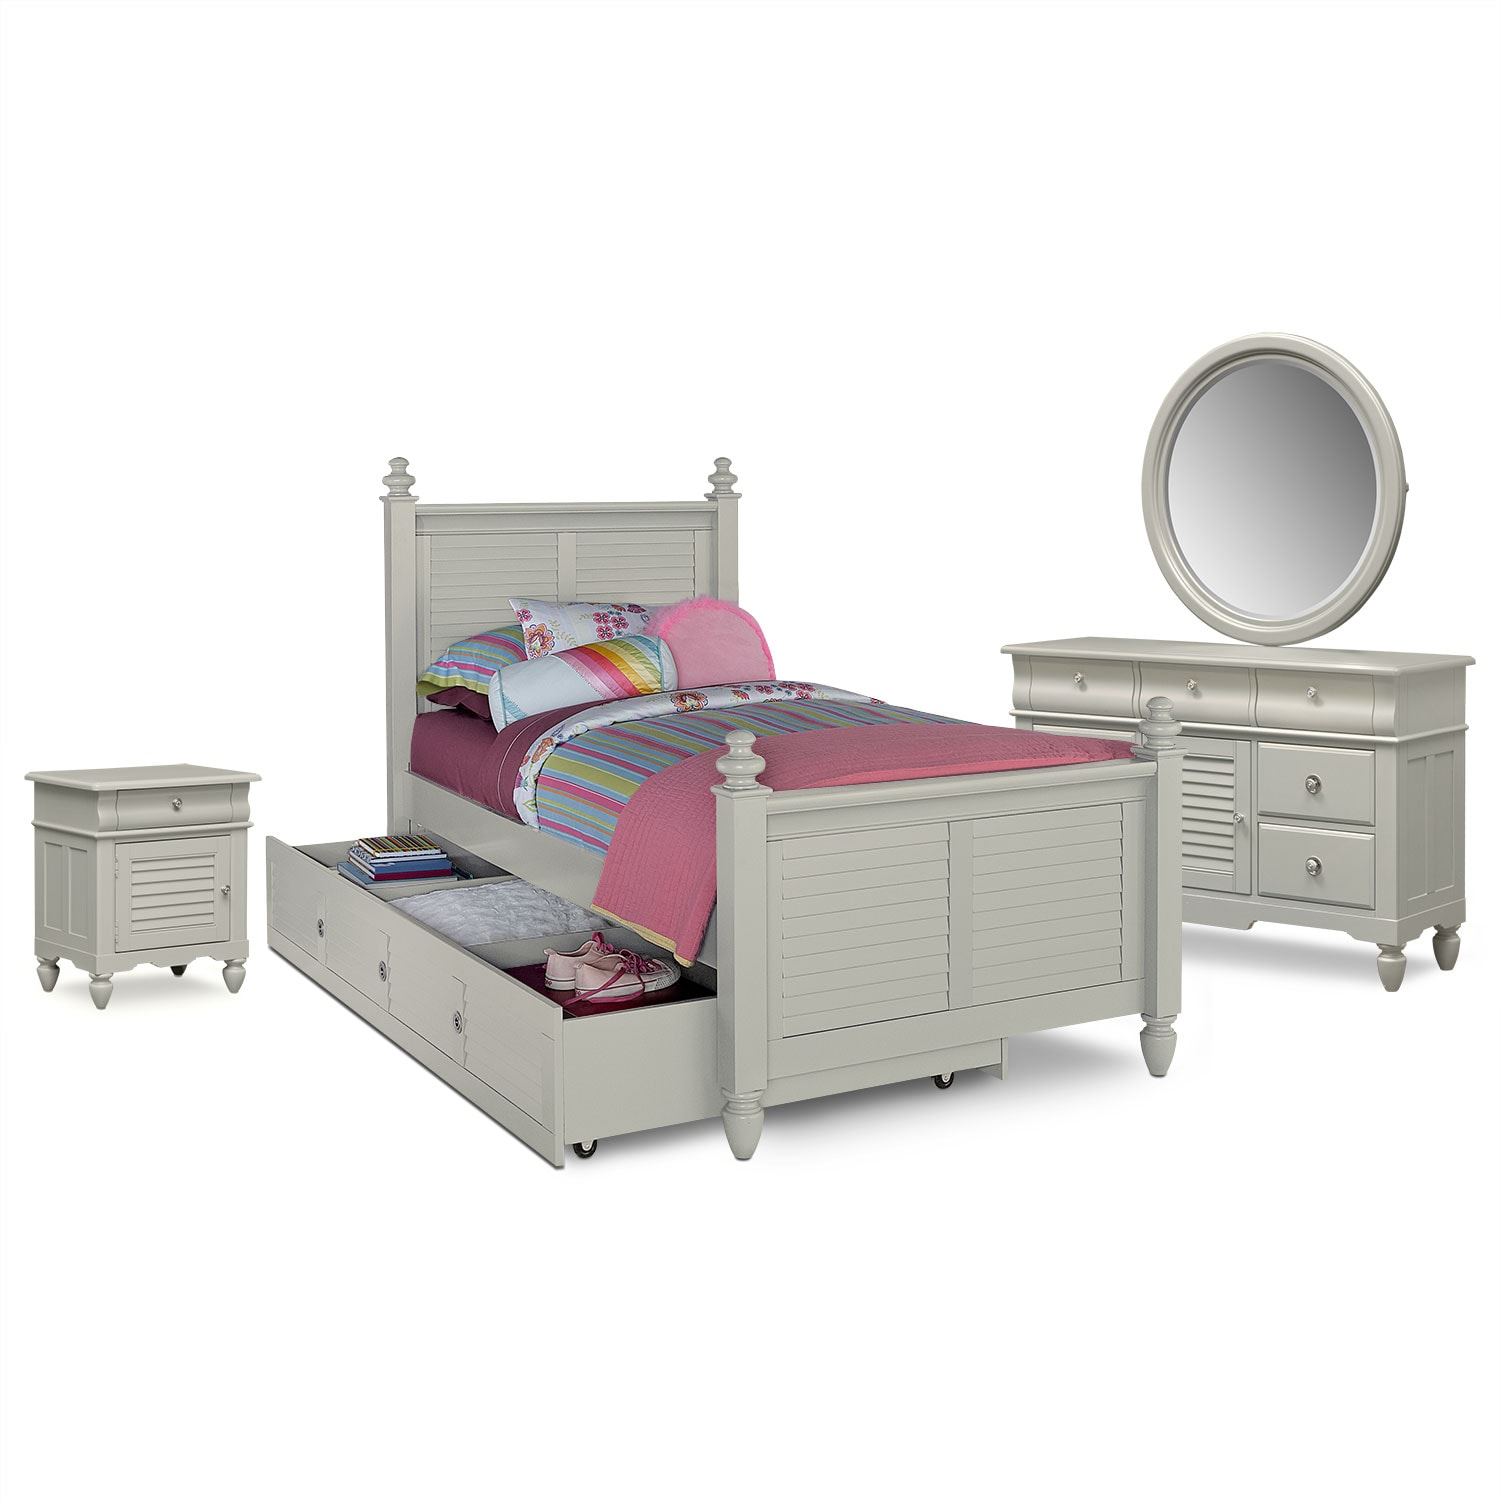 Kids Furniture - Seaside 7-Piece Full Bedroom Set with Trundle - Gray